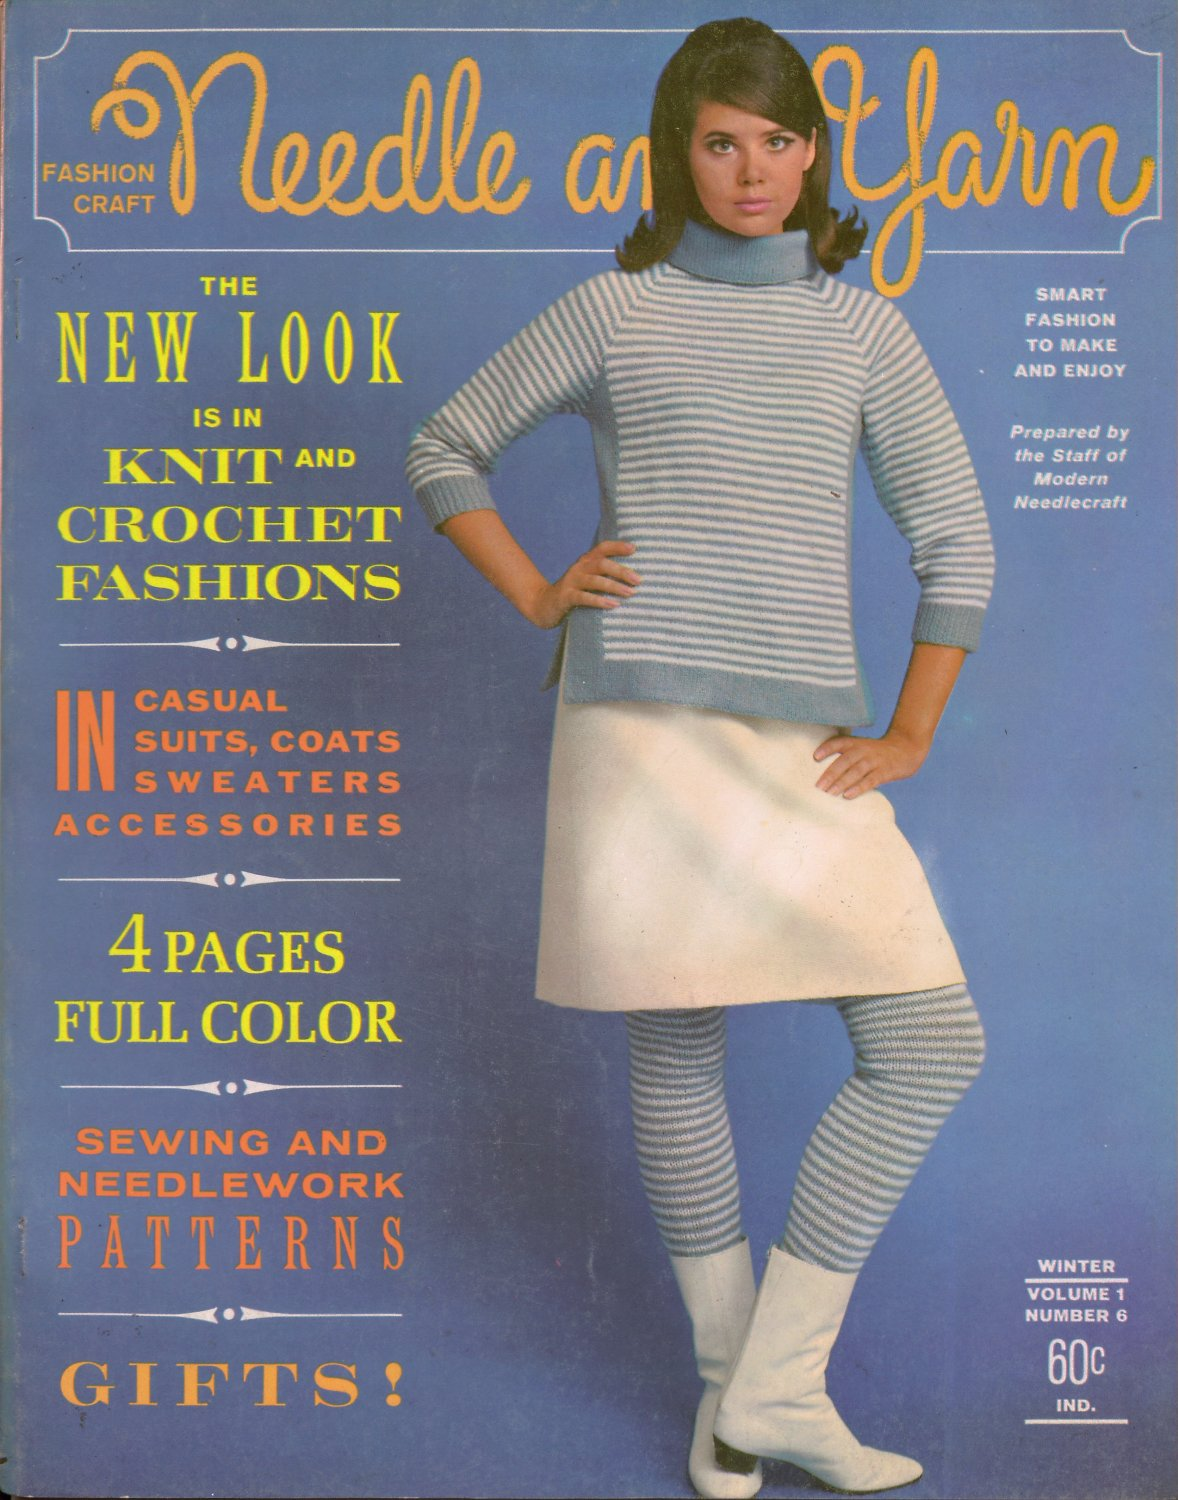 Needle Yarn #6 Fall Winter 1965 Knitting Crochet Patterns Ski Sweater Lace Dress